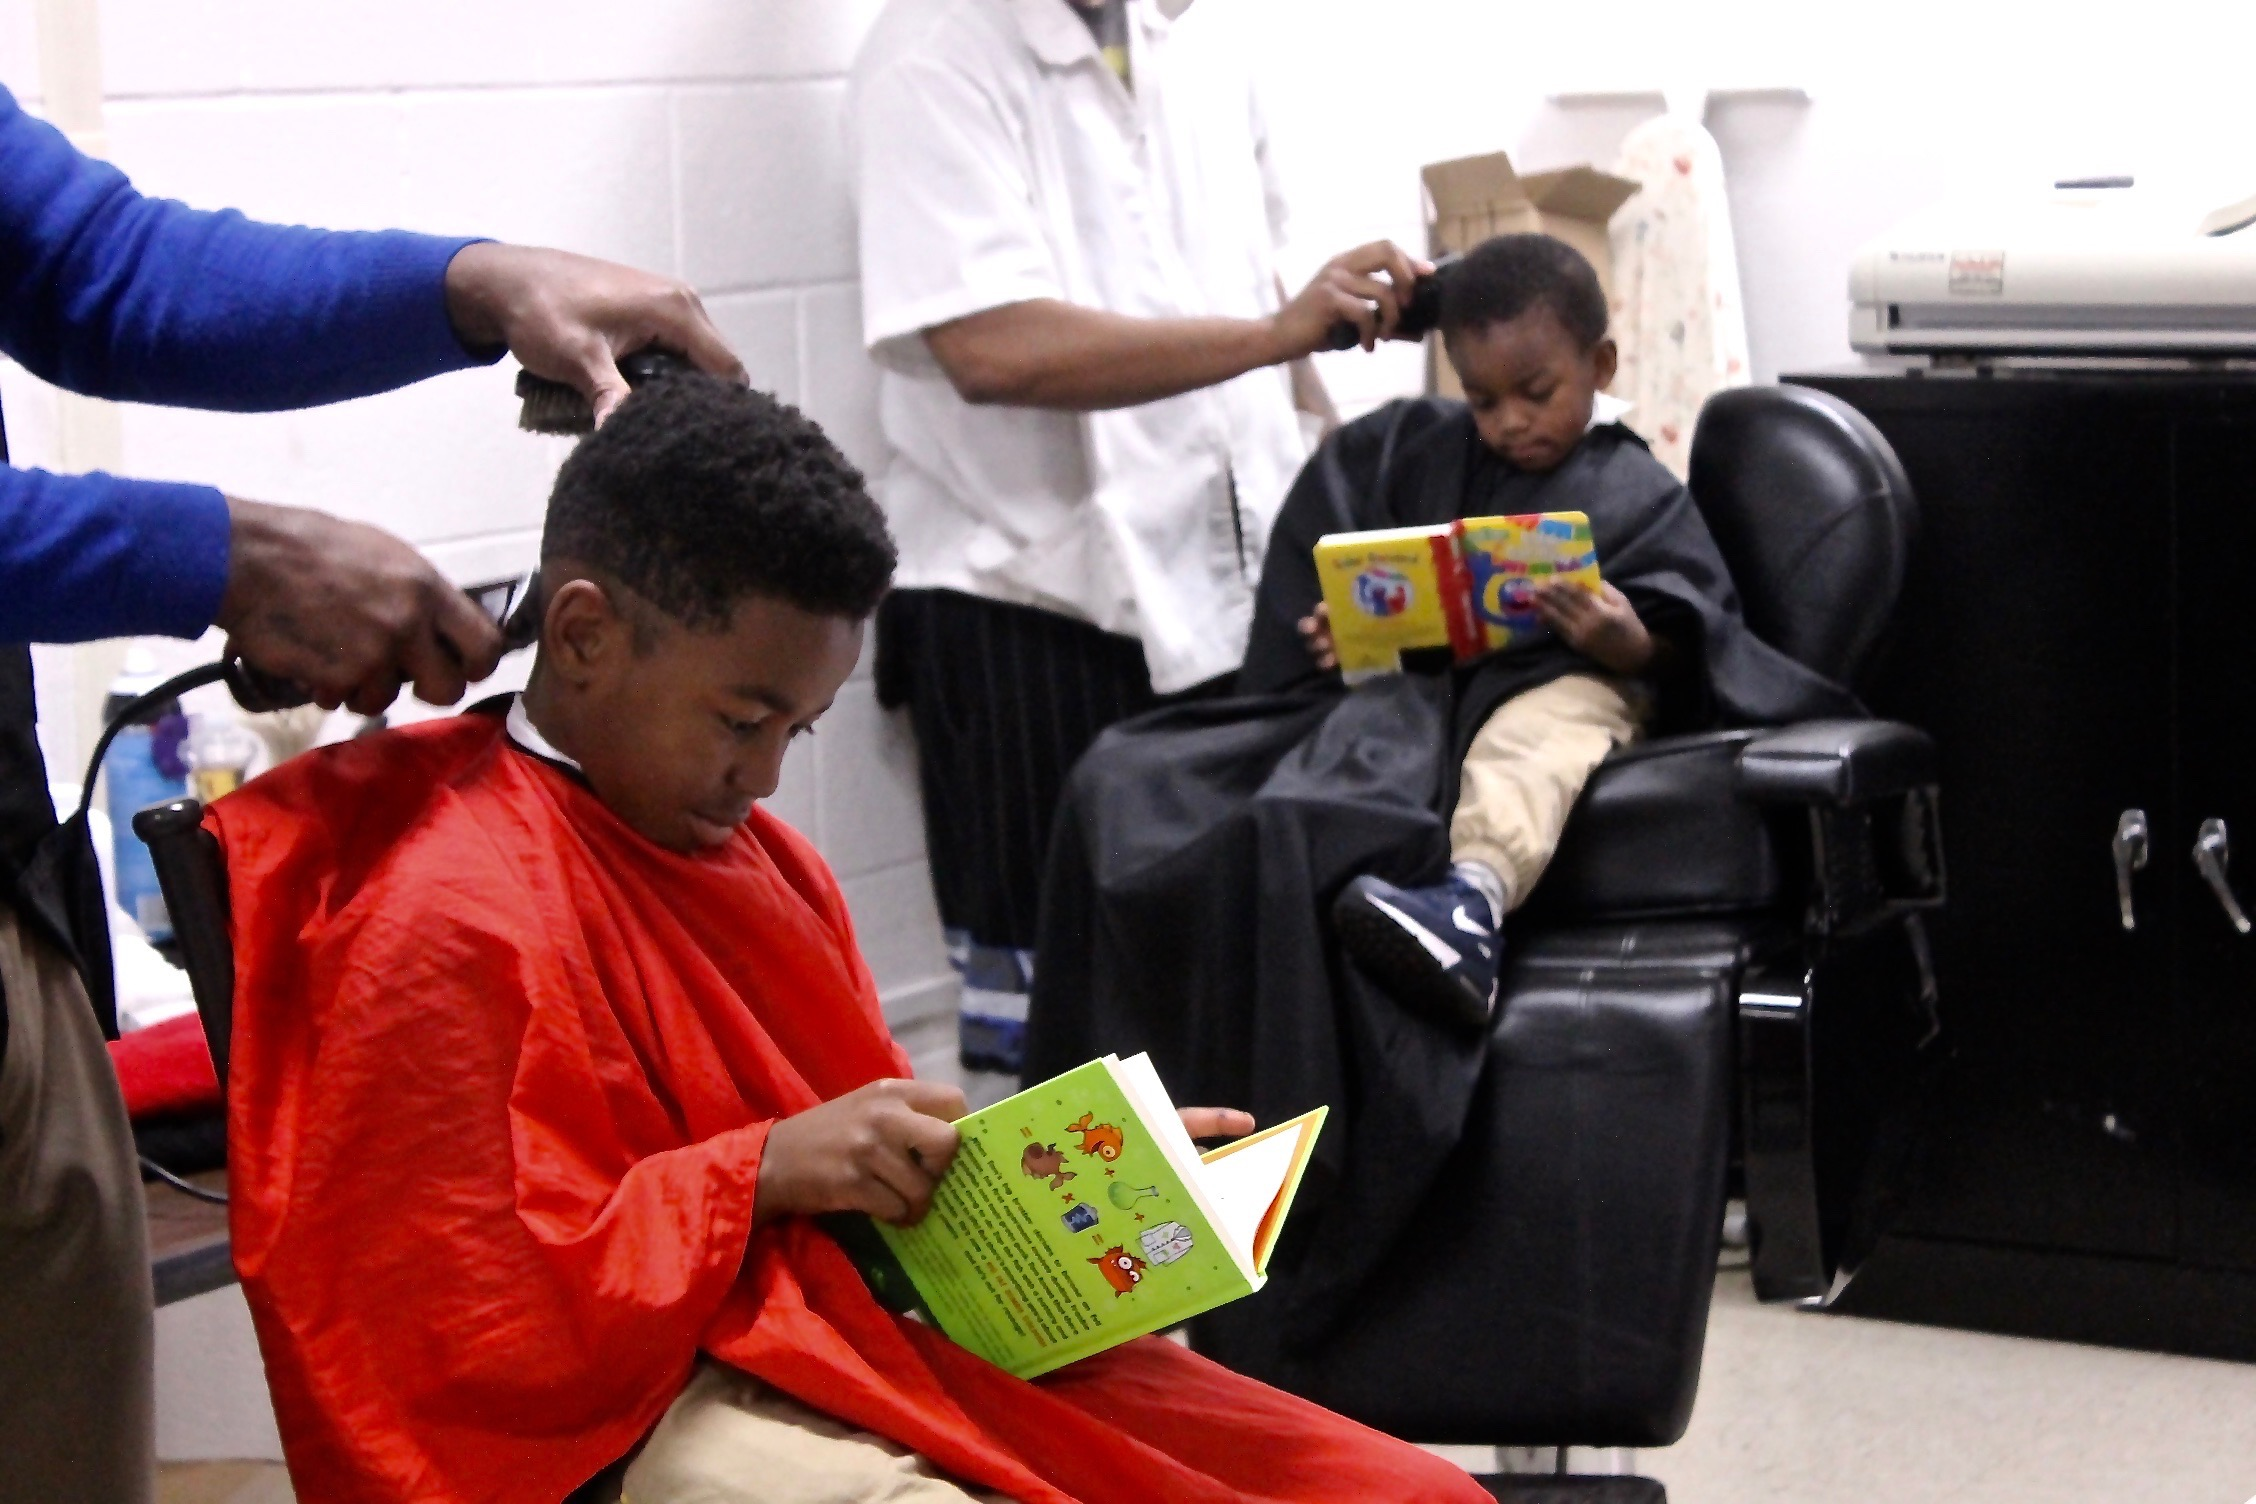 Two Kings Reading Their Books While Getting Their Haircuts at Support The Port Foundation, Inc. Come Through it's Lit Book Drive & Literature Initiative